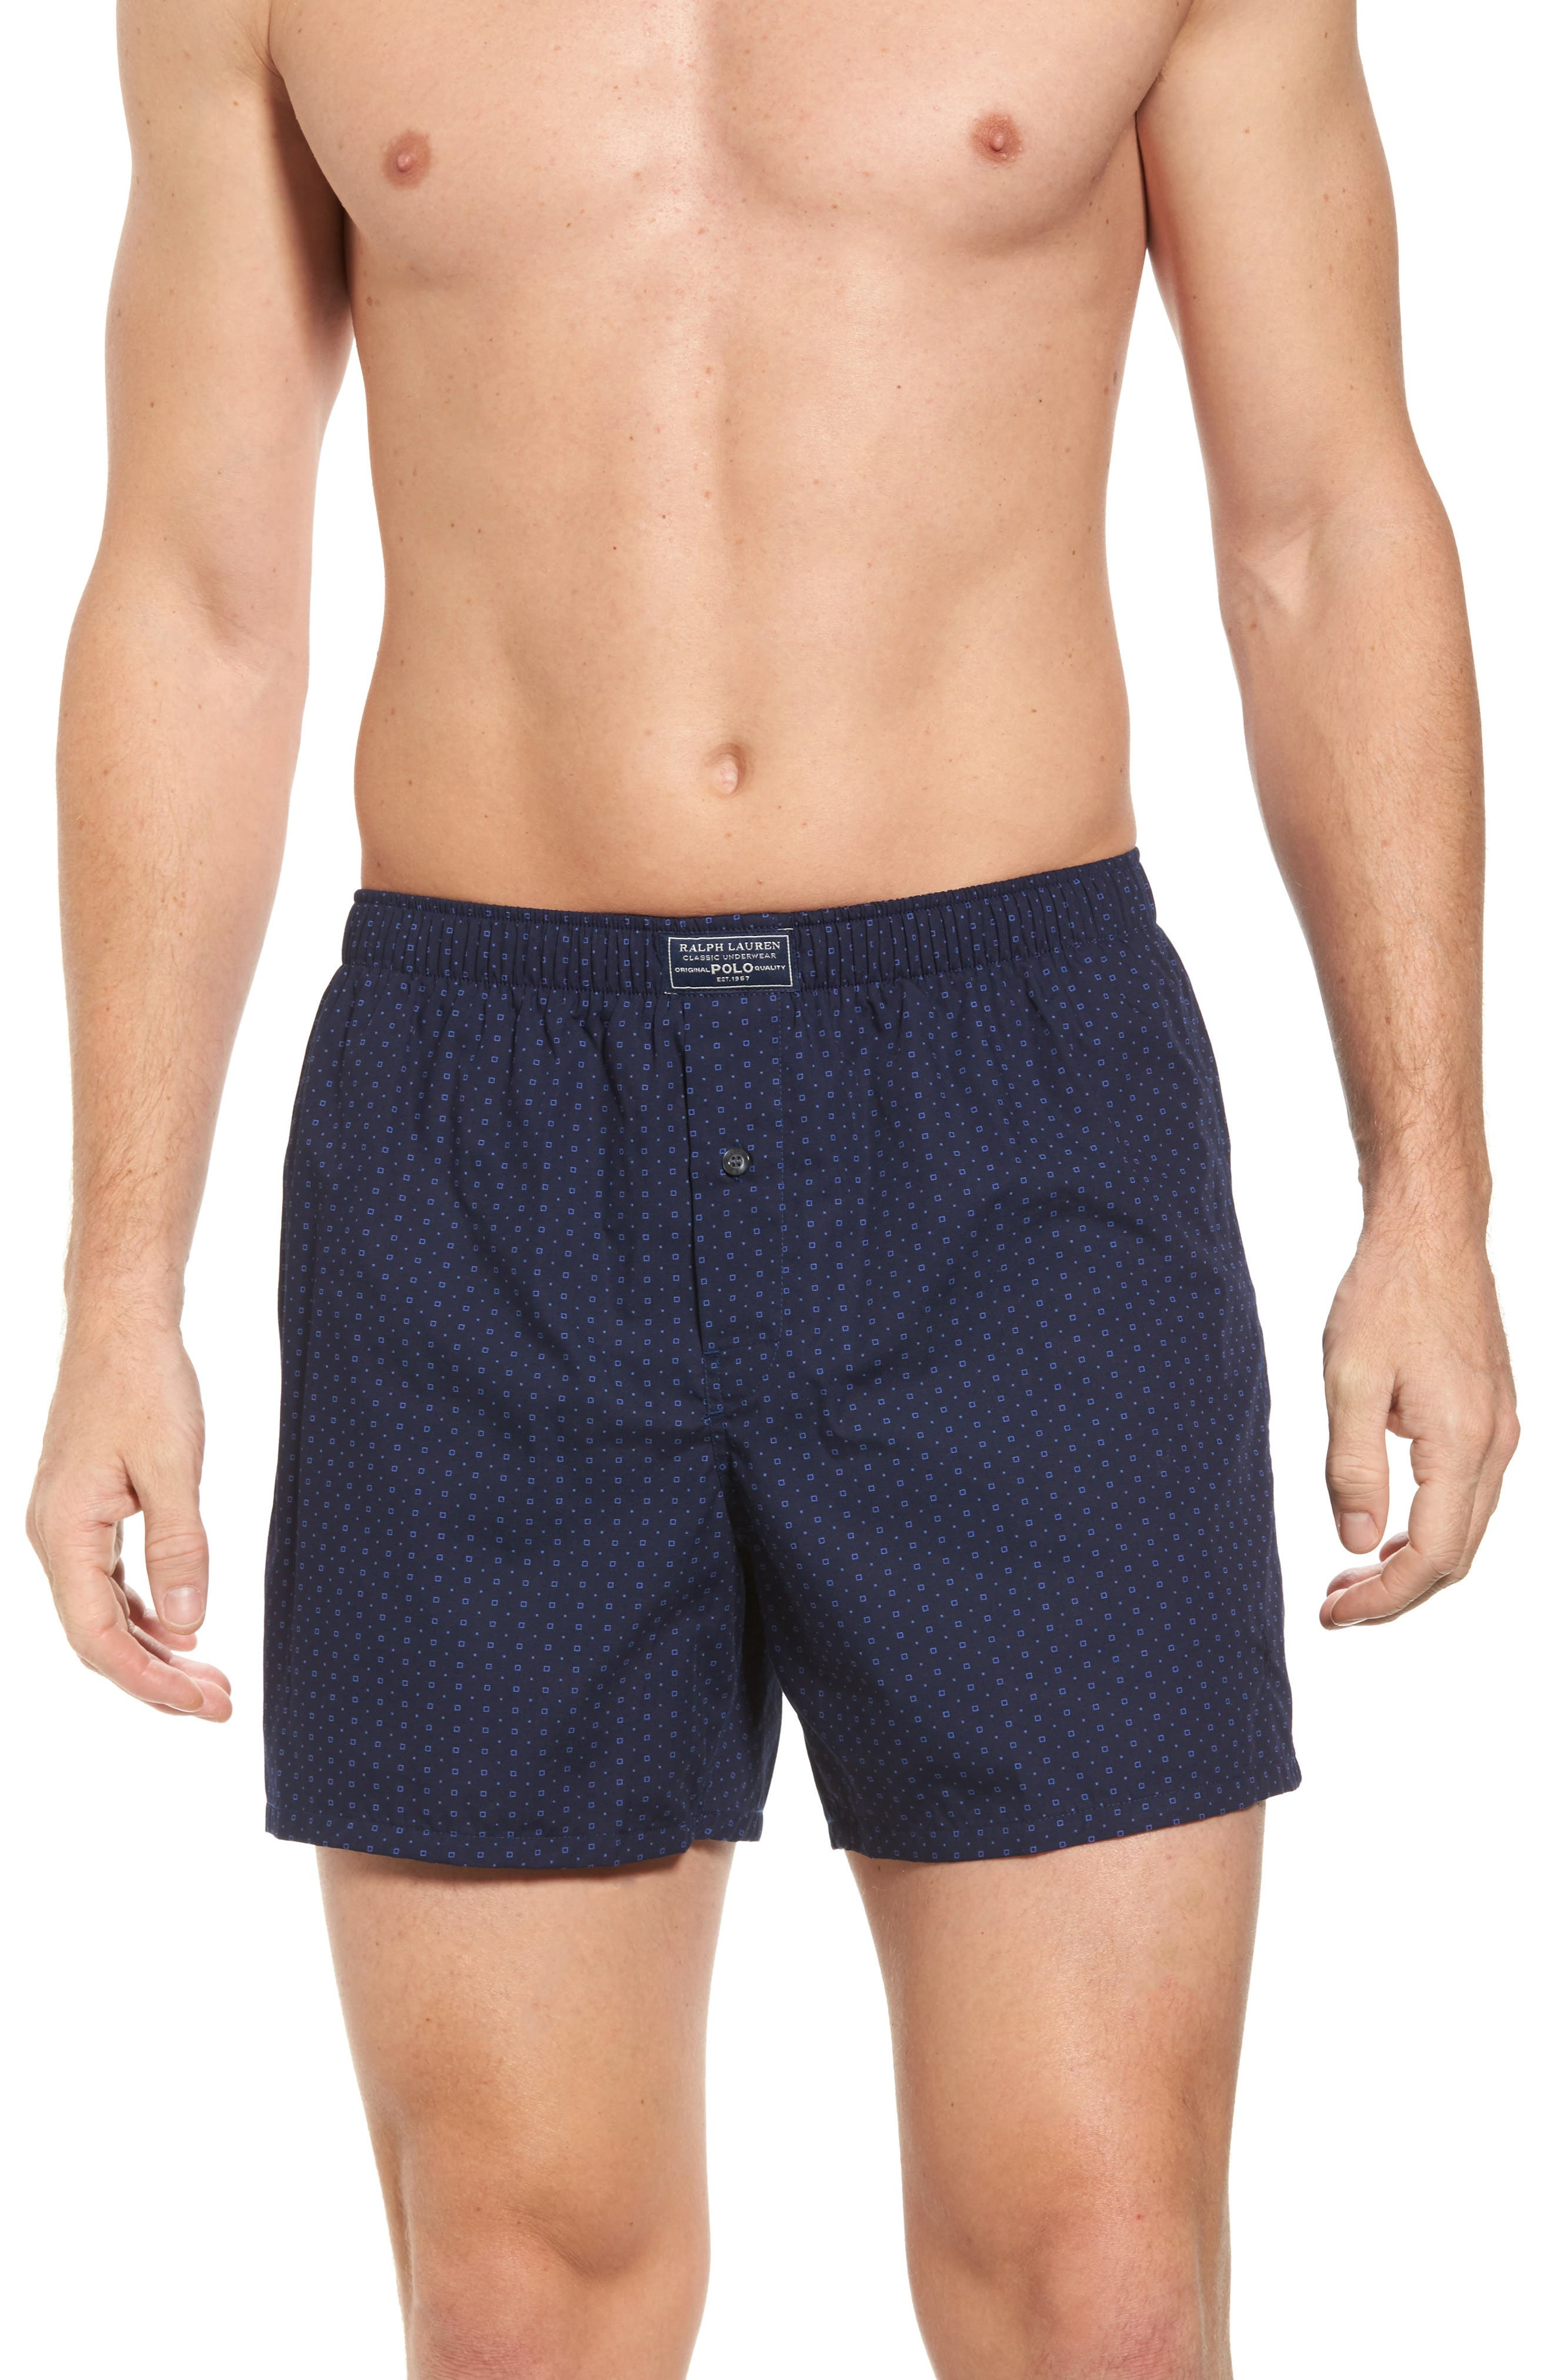 Classic Cotton Boxers,                         Main,                         color, Navy Dot Print/ Cruise Navy